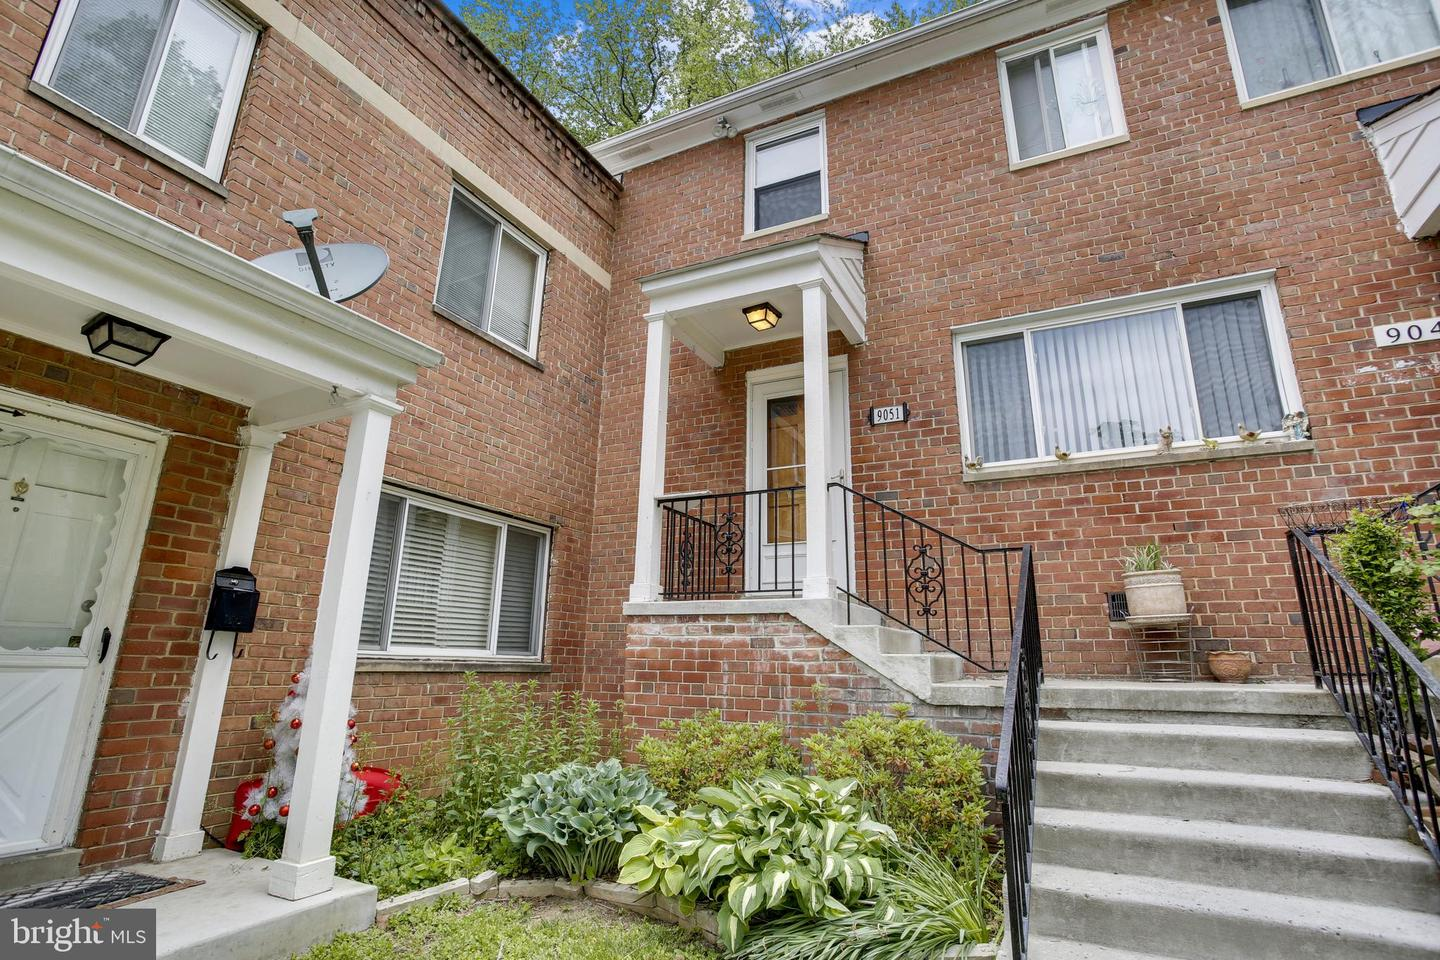 9051 MANCHESTER RD, SILVER SPRING, Maryland 20901, 3 Bedrooms Bedrooms, ,2 BathroomsBathrooms,Common Interest,For Sale,9051 MANCHESTER RD,MDMC756536